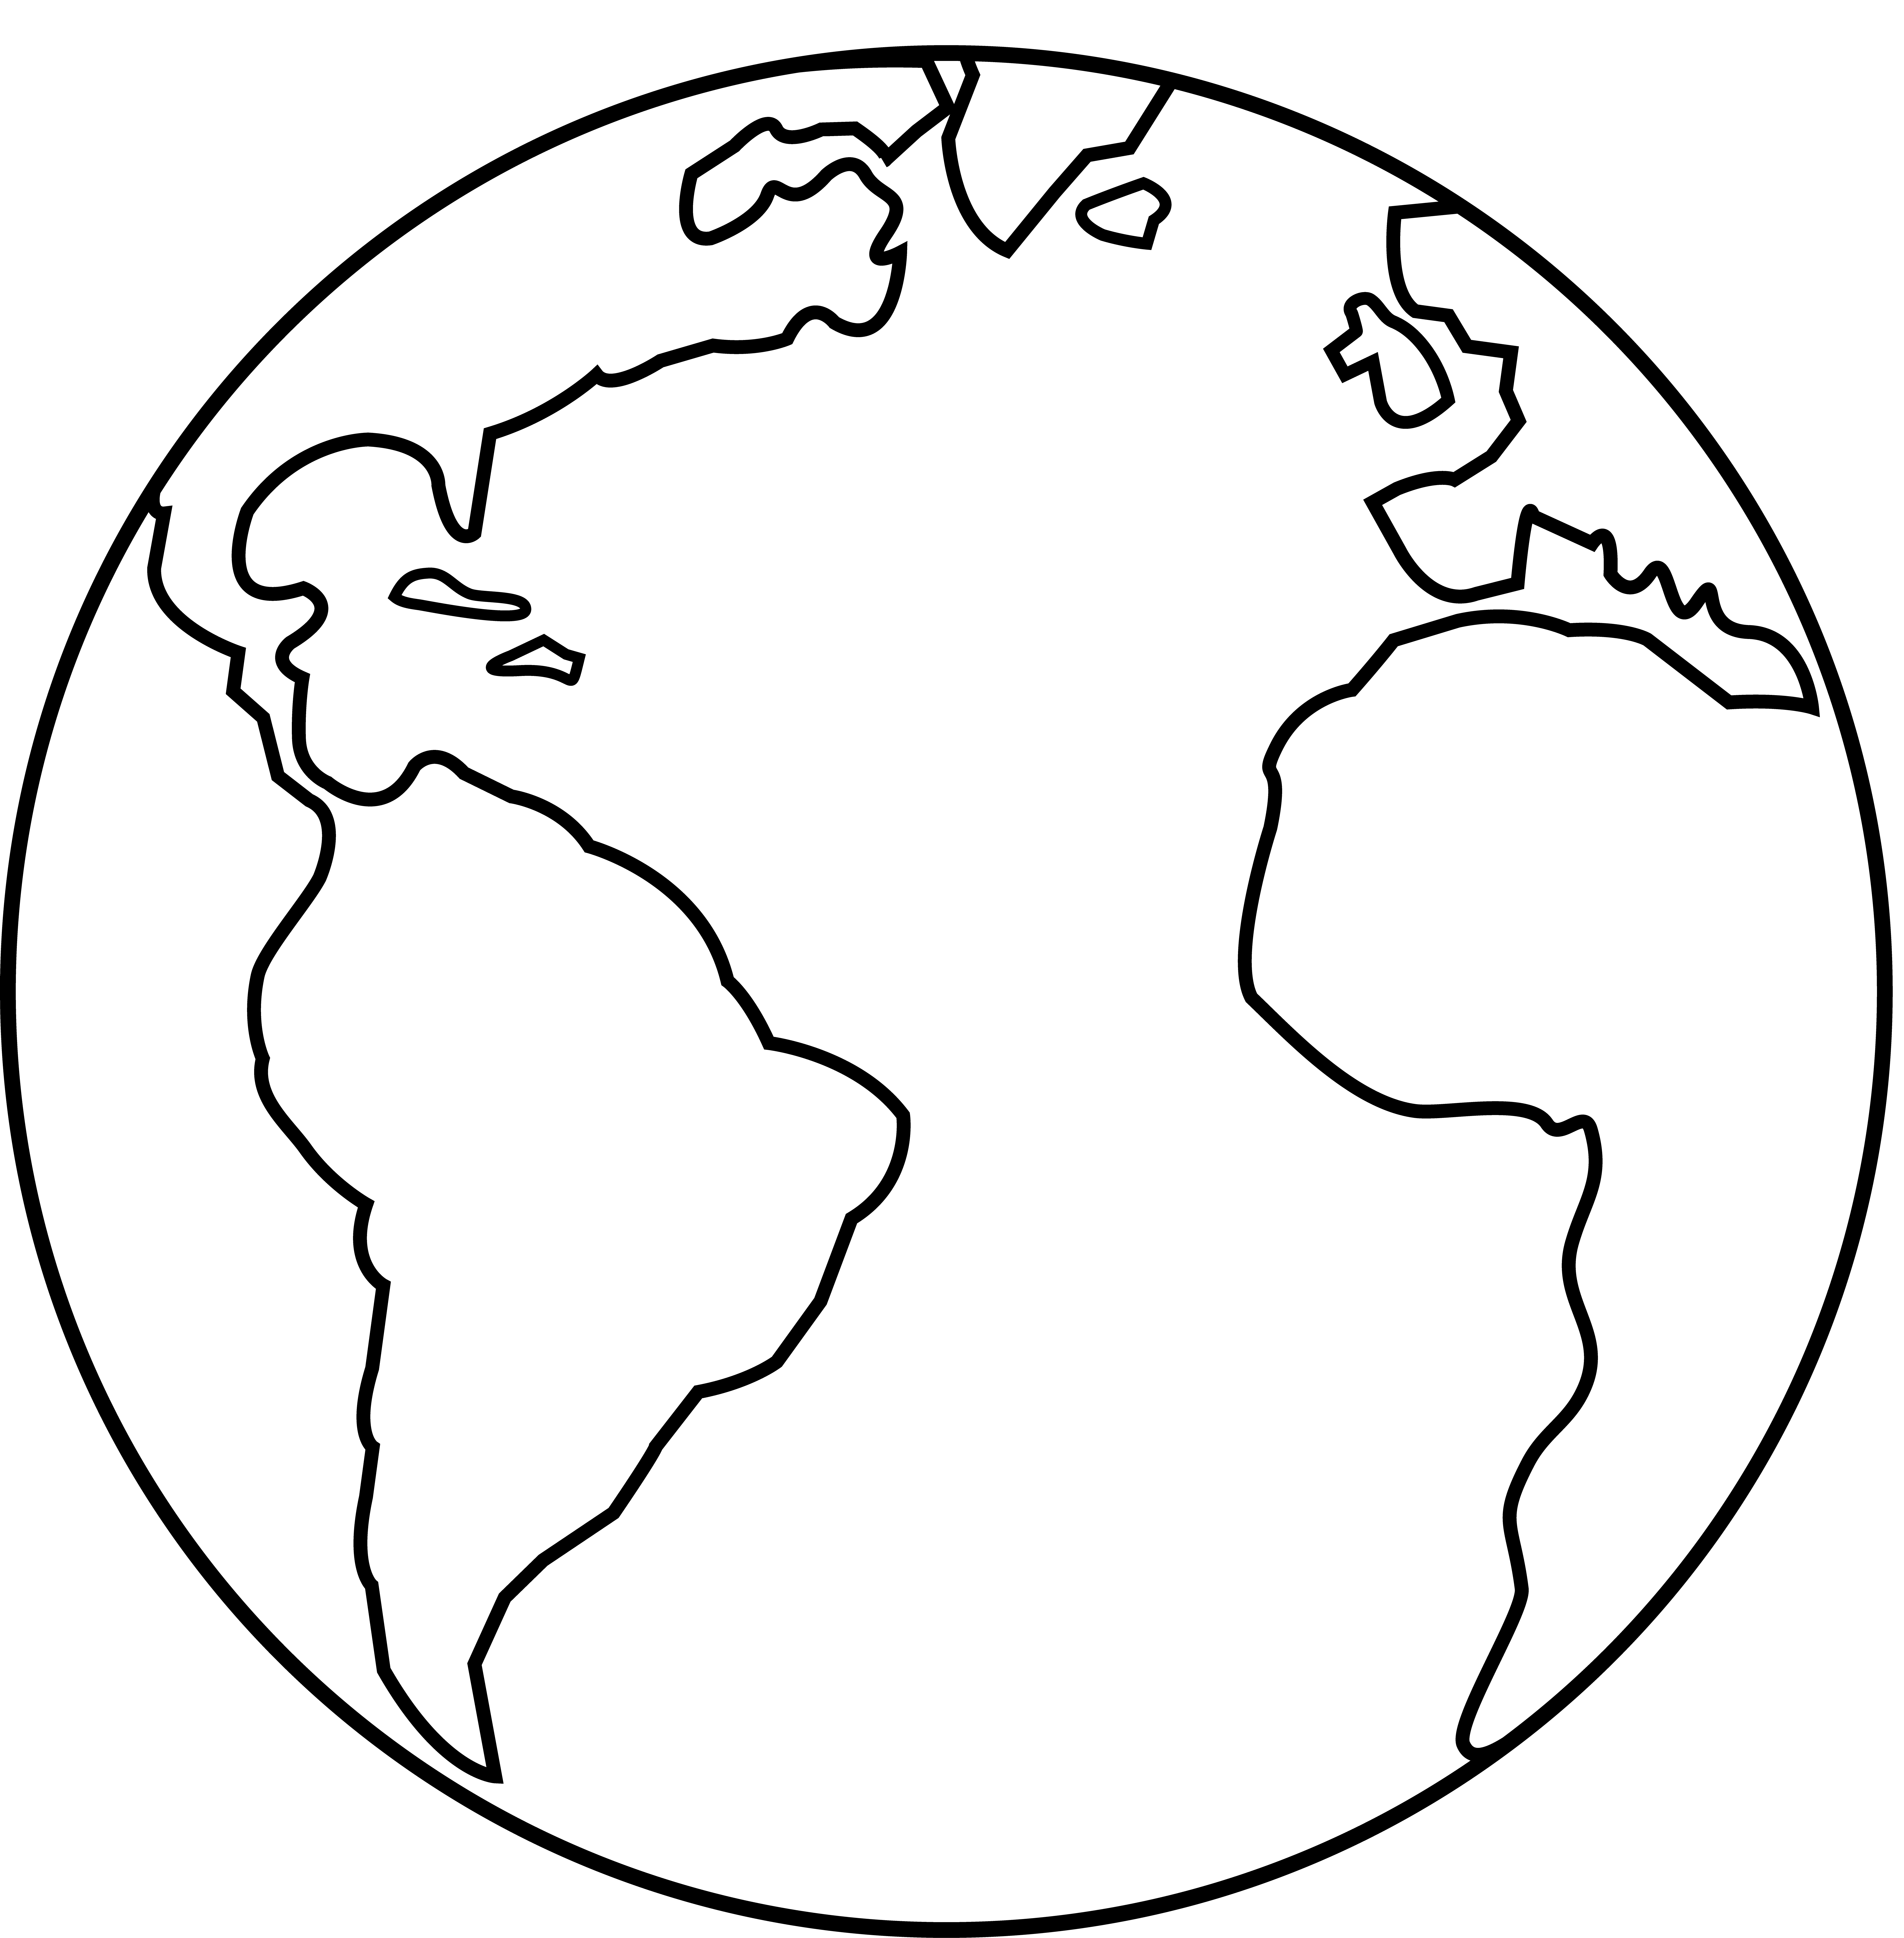 Free Continents Clipart Black And White, Download Free Clip.